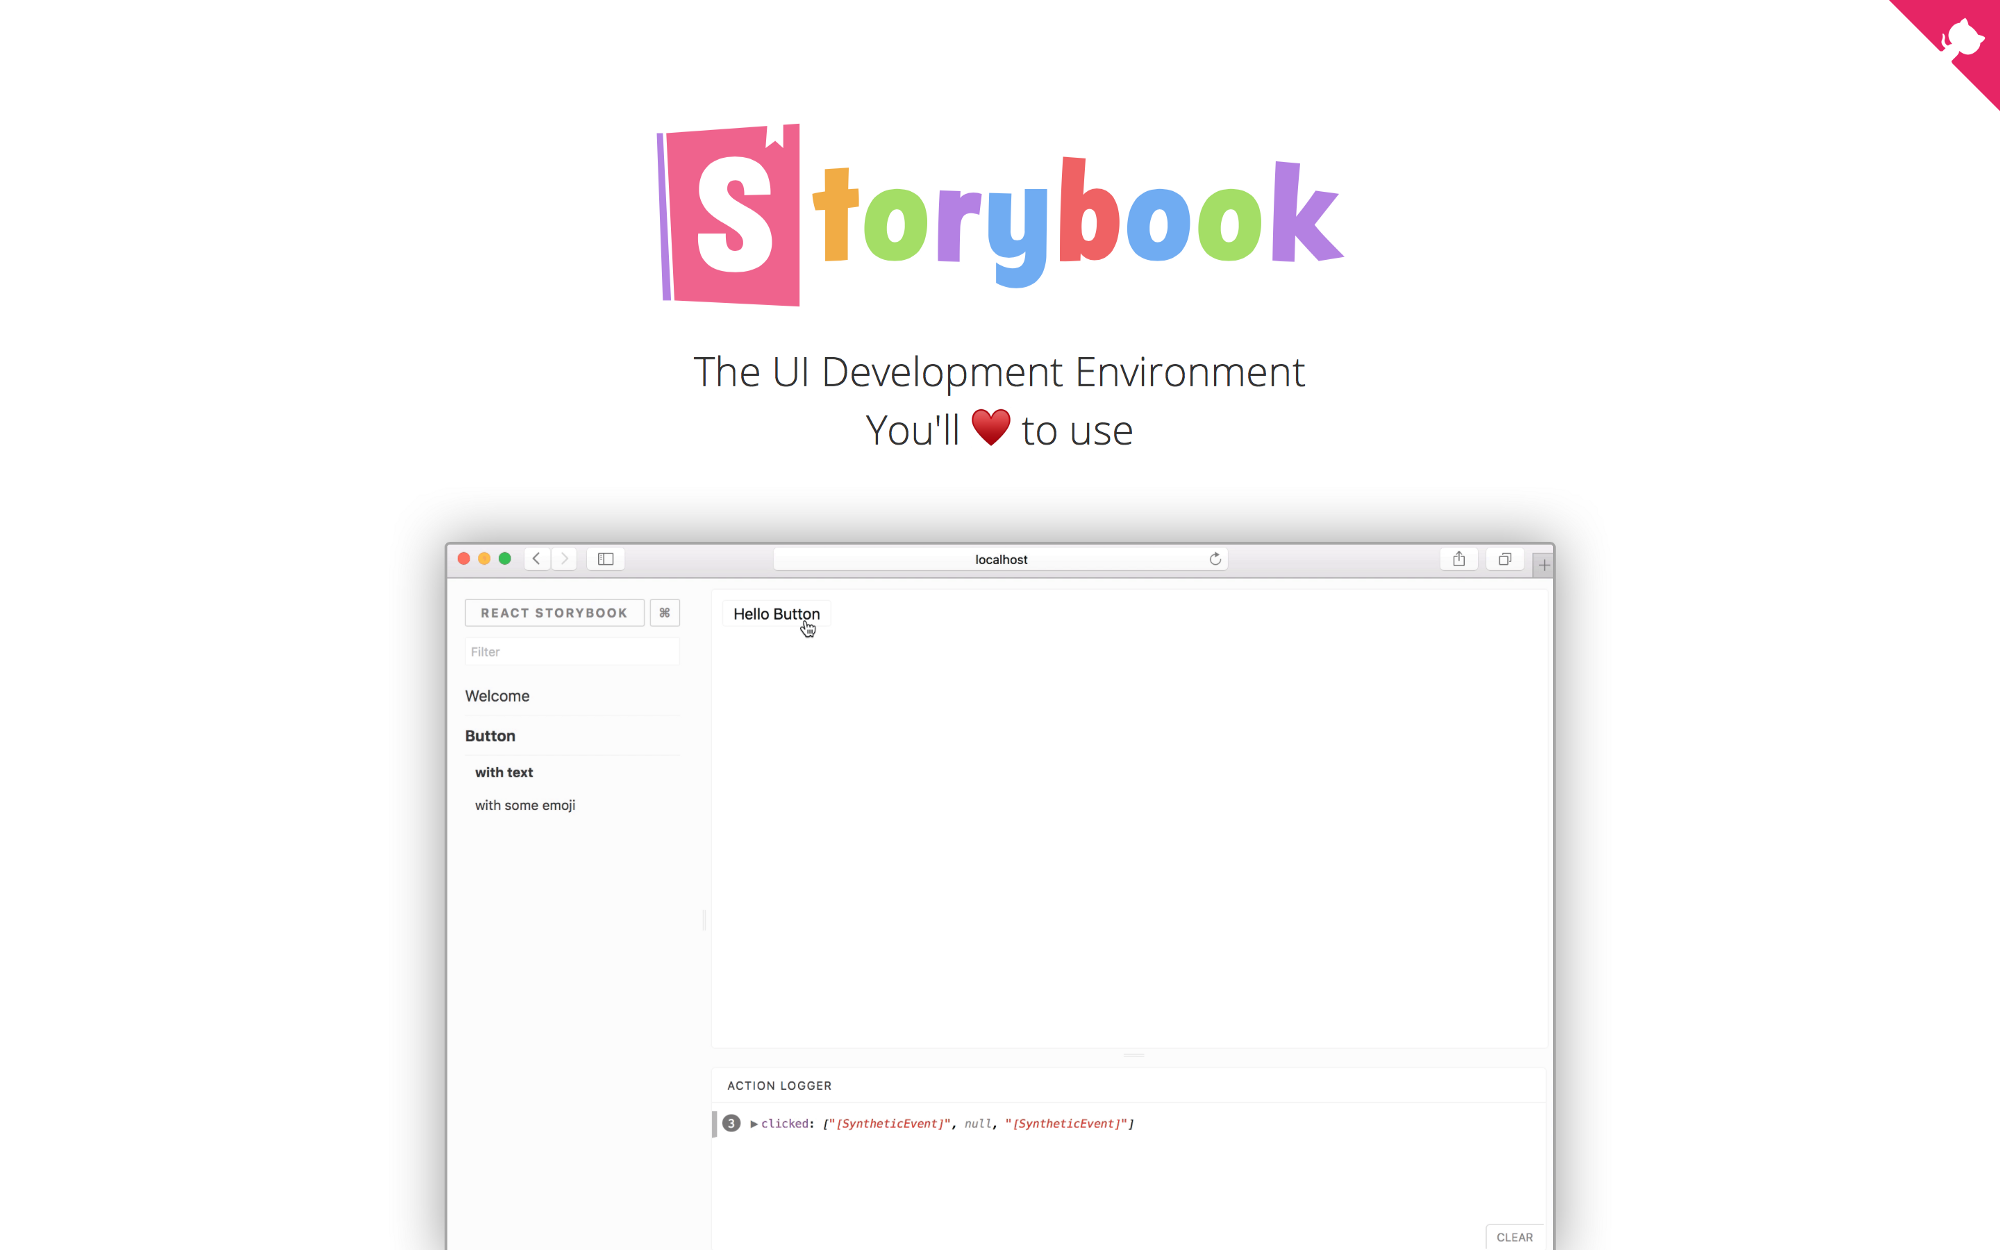 Storybook Driven Development (SDD) - it's the future of Front end development!